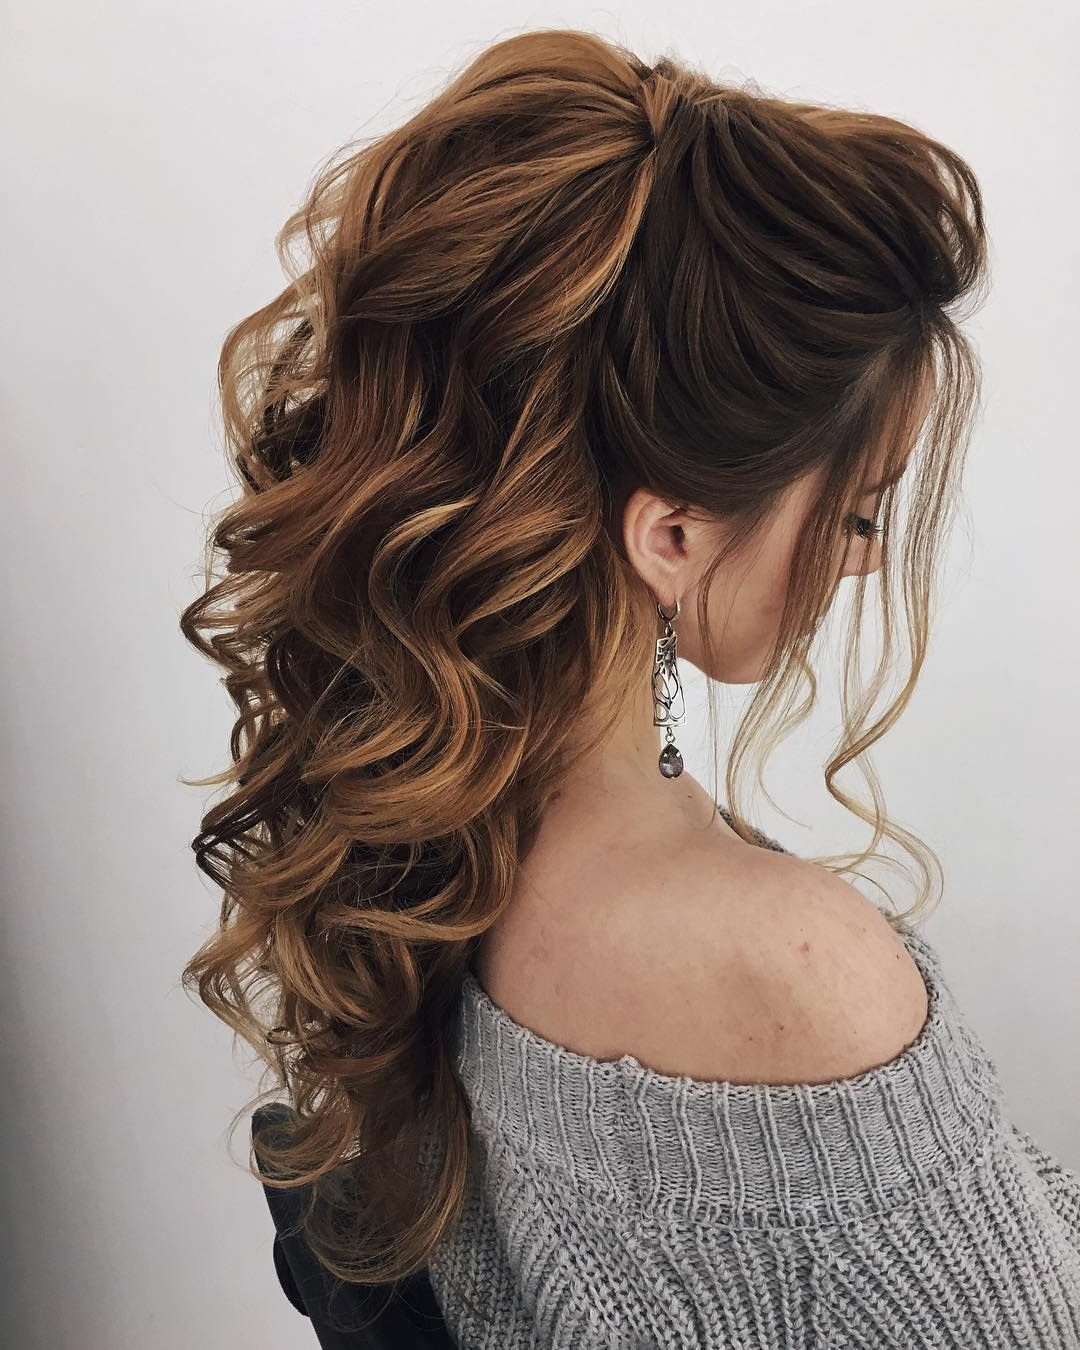 87 Fabulous Wedding Hairstyles For Every Wedding Dress Neckline Pertaining To 2017 Fabulous Cascade Of Loose Curls Bridal Hairstyles (View 12 of 20)